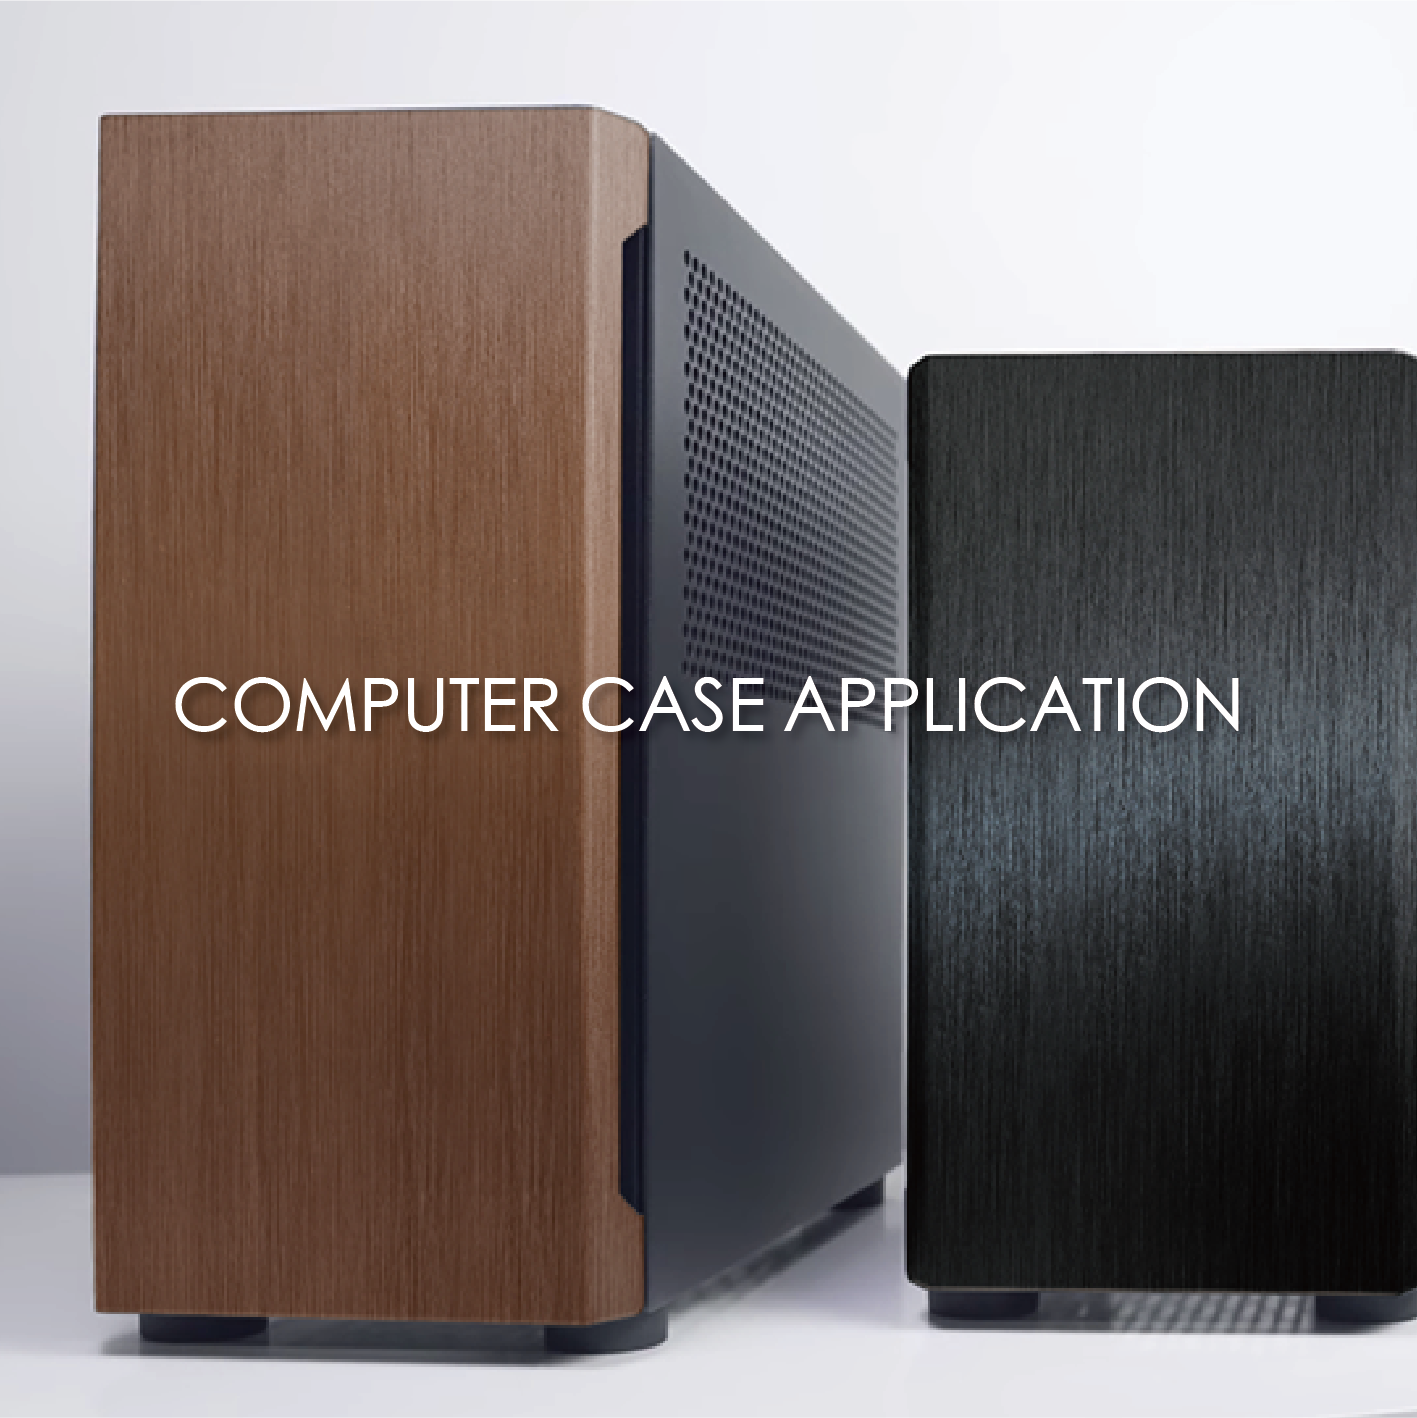 3D texture coated metal decorative computer case can increase the appearance and fashion sense